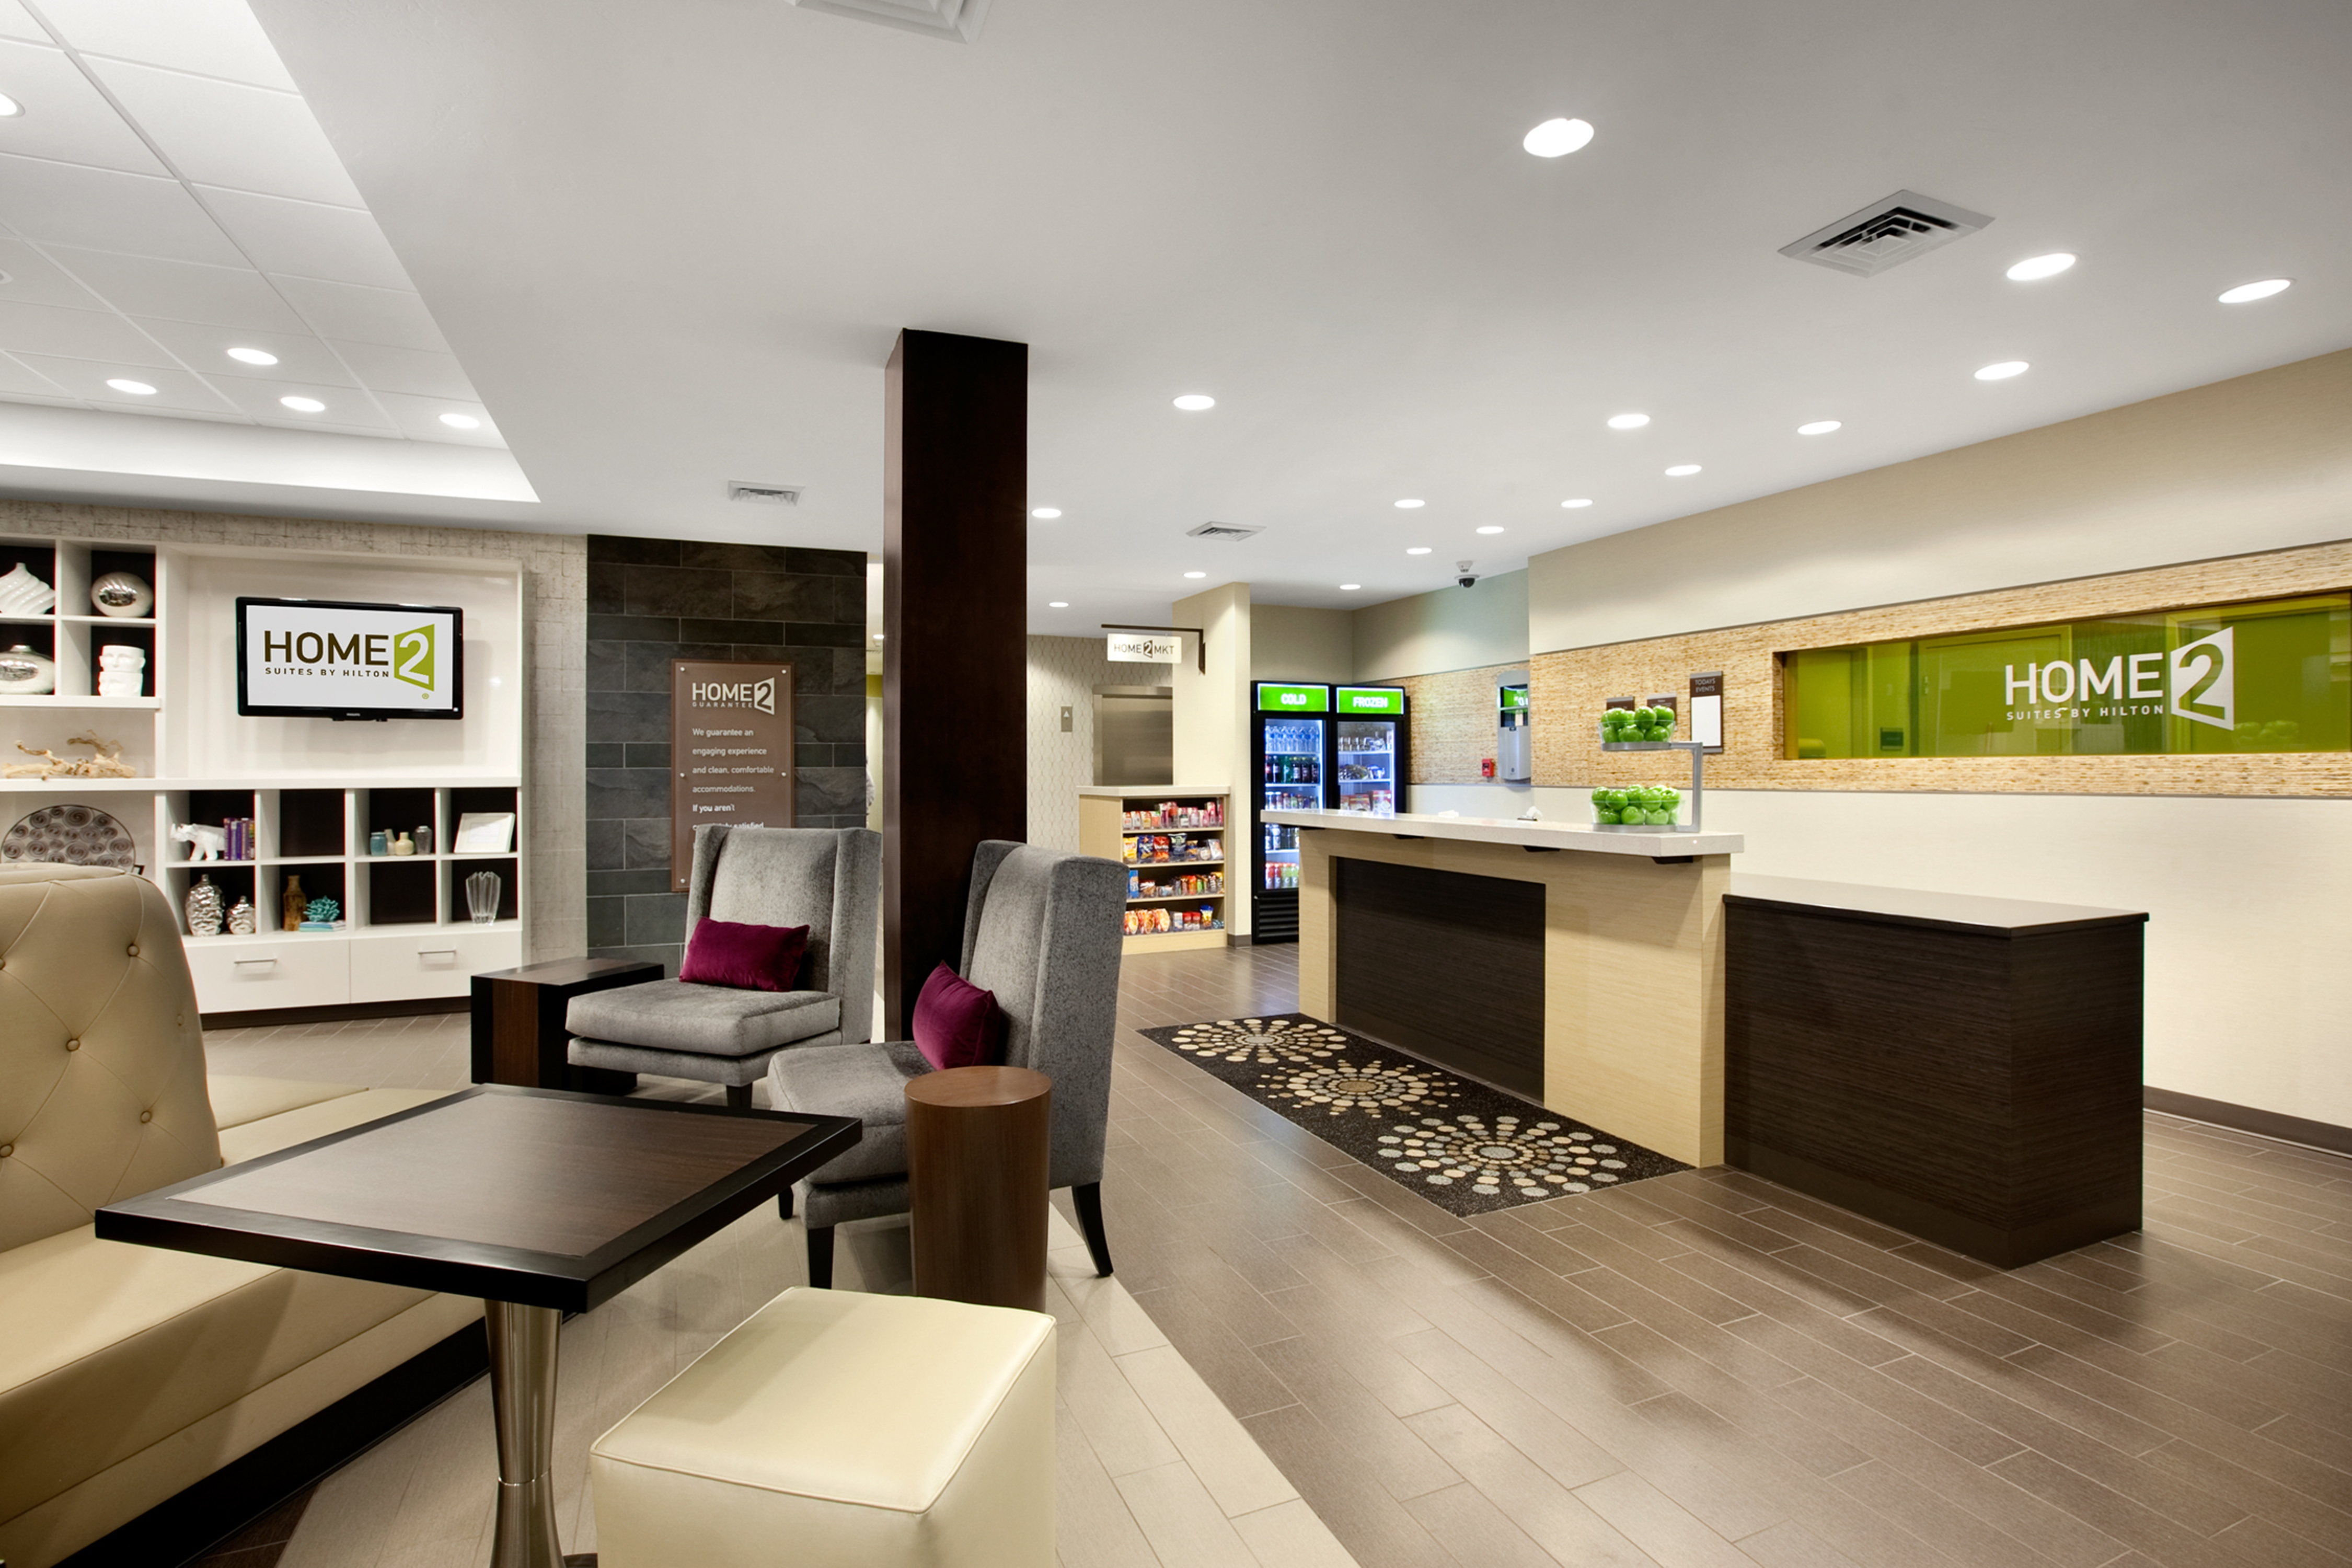 Home2 Suites By Hilton  West Valley